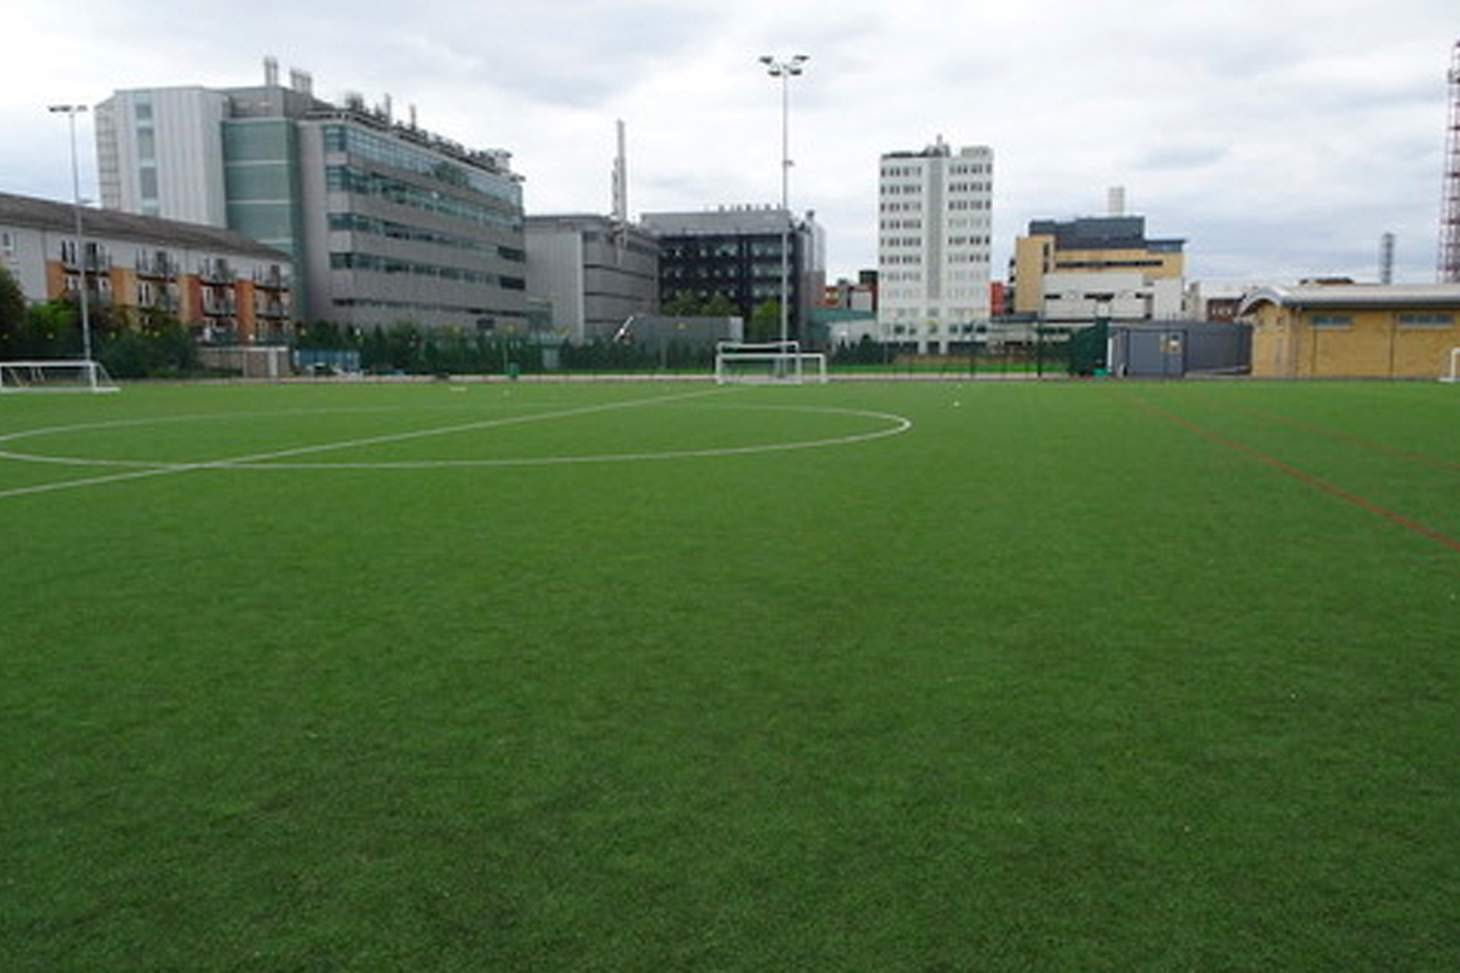 Ark Burlington Danes Academy Outdoor | 3G Astroturf hockey pitch